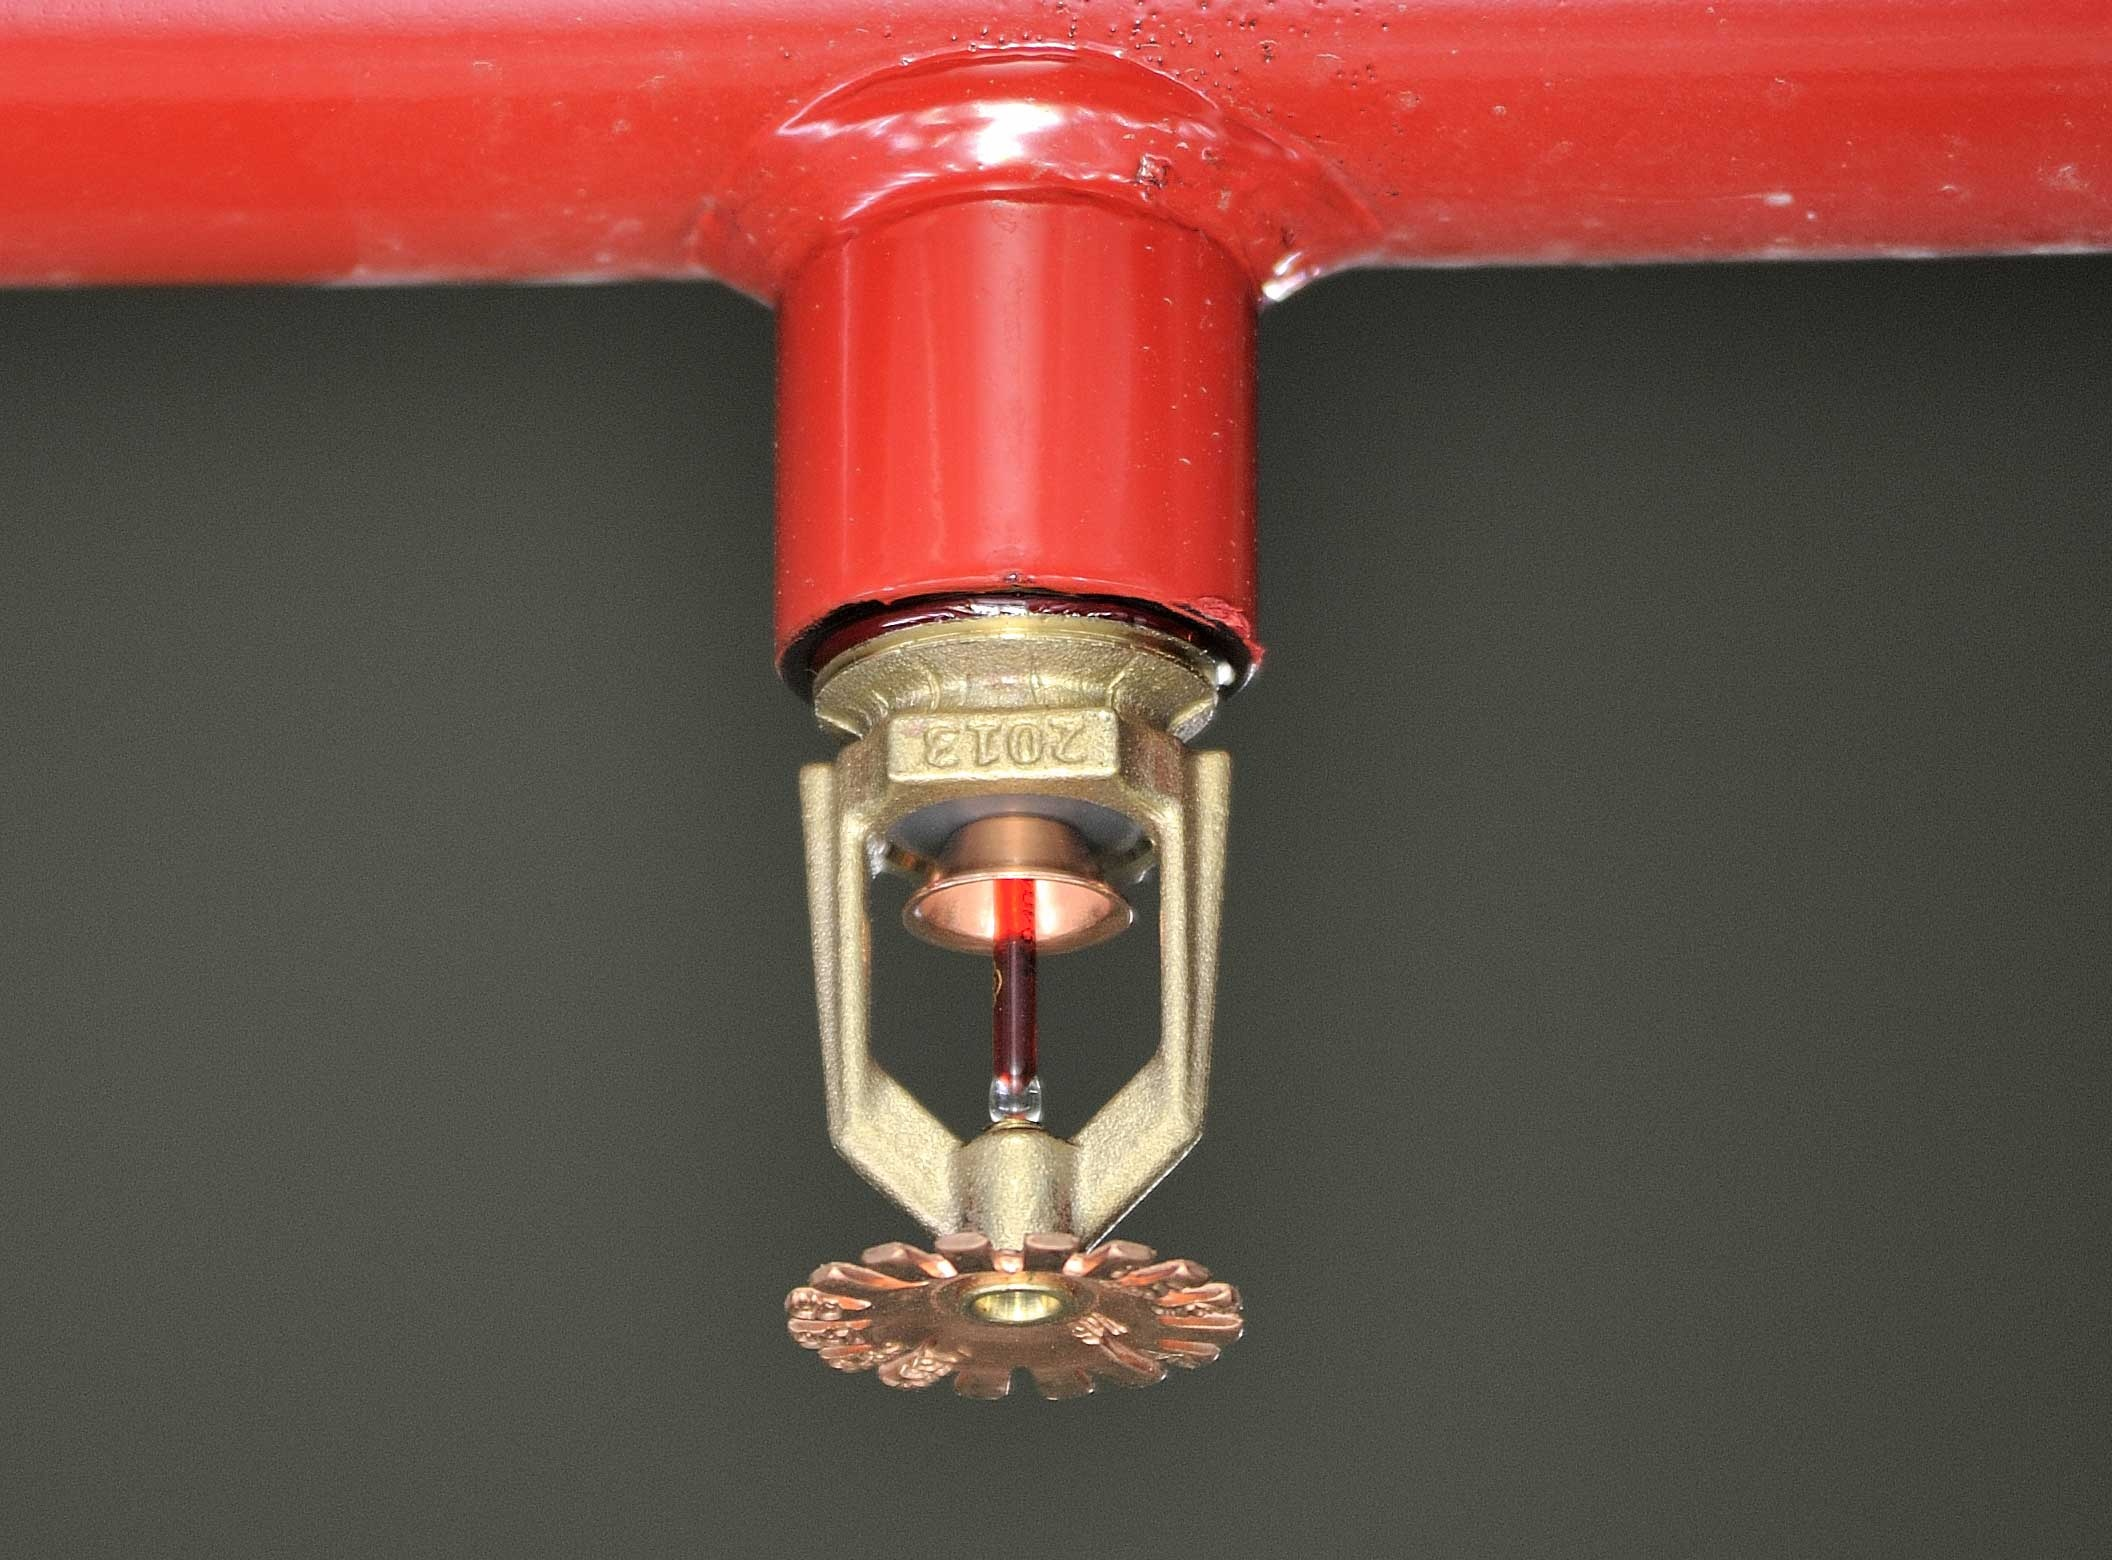 How many fire sprinkler head can be fed by 3 inch pipe? - Quora